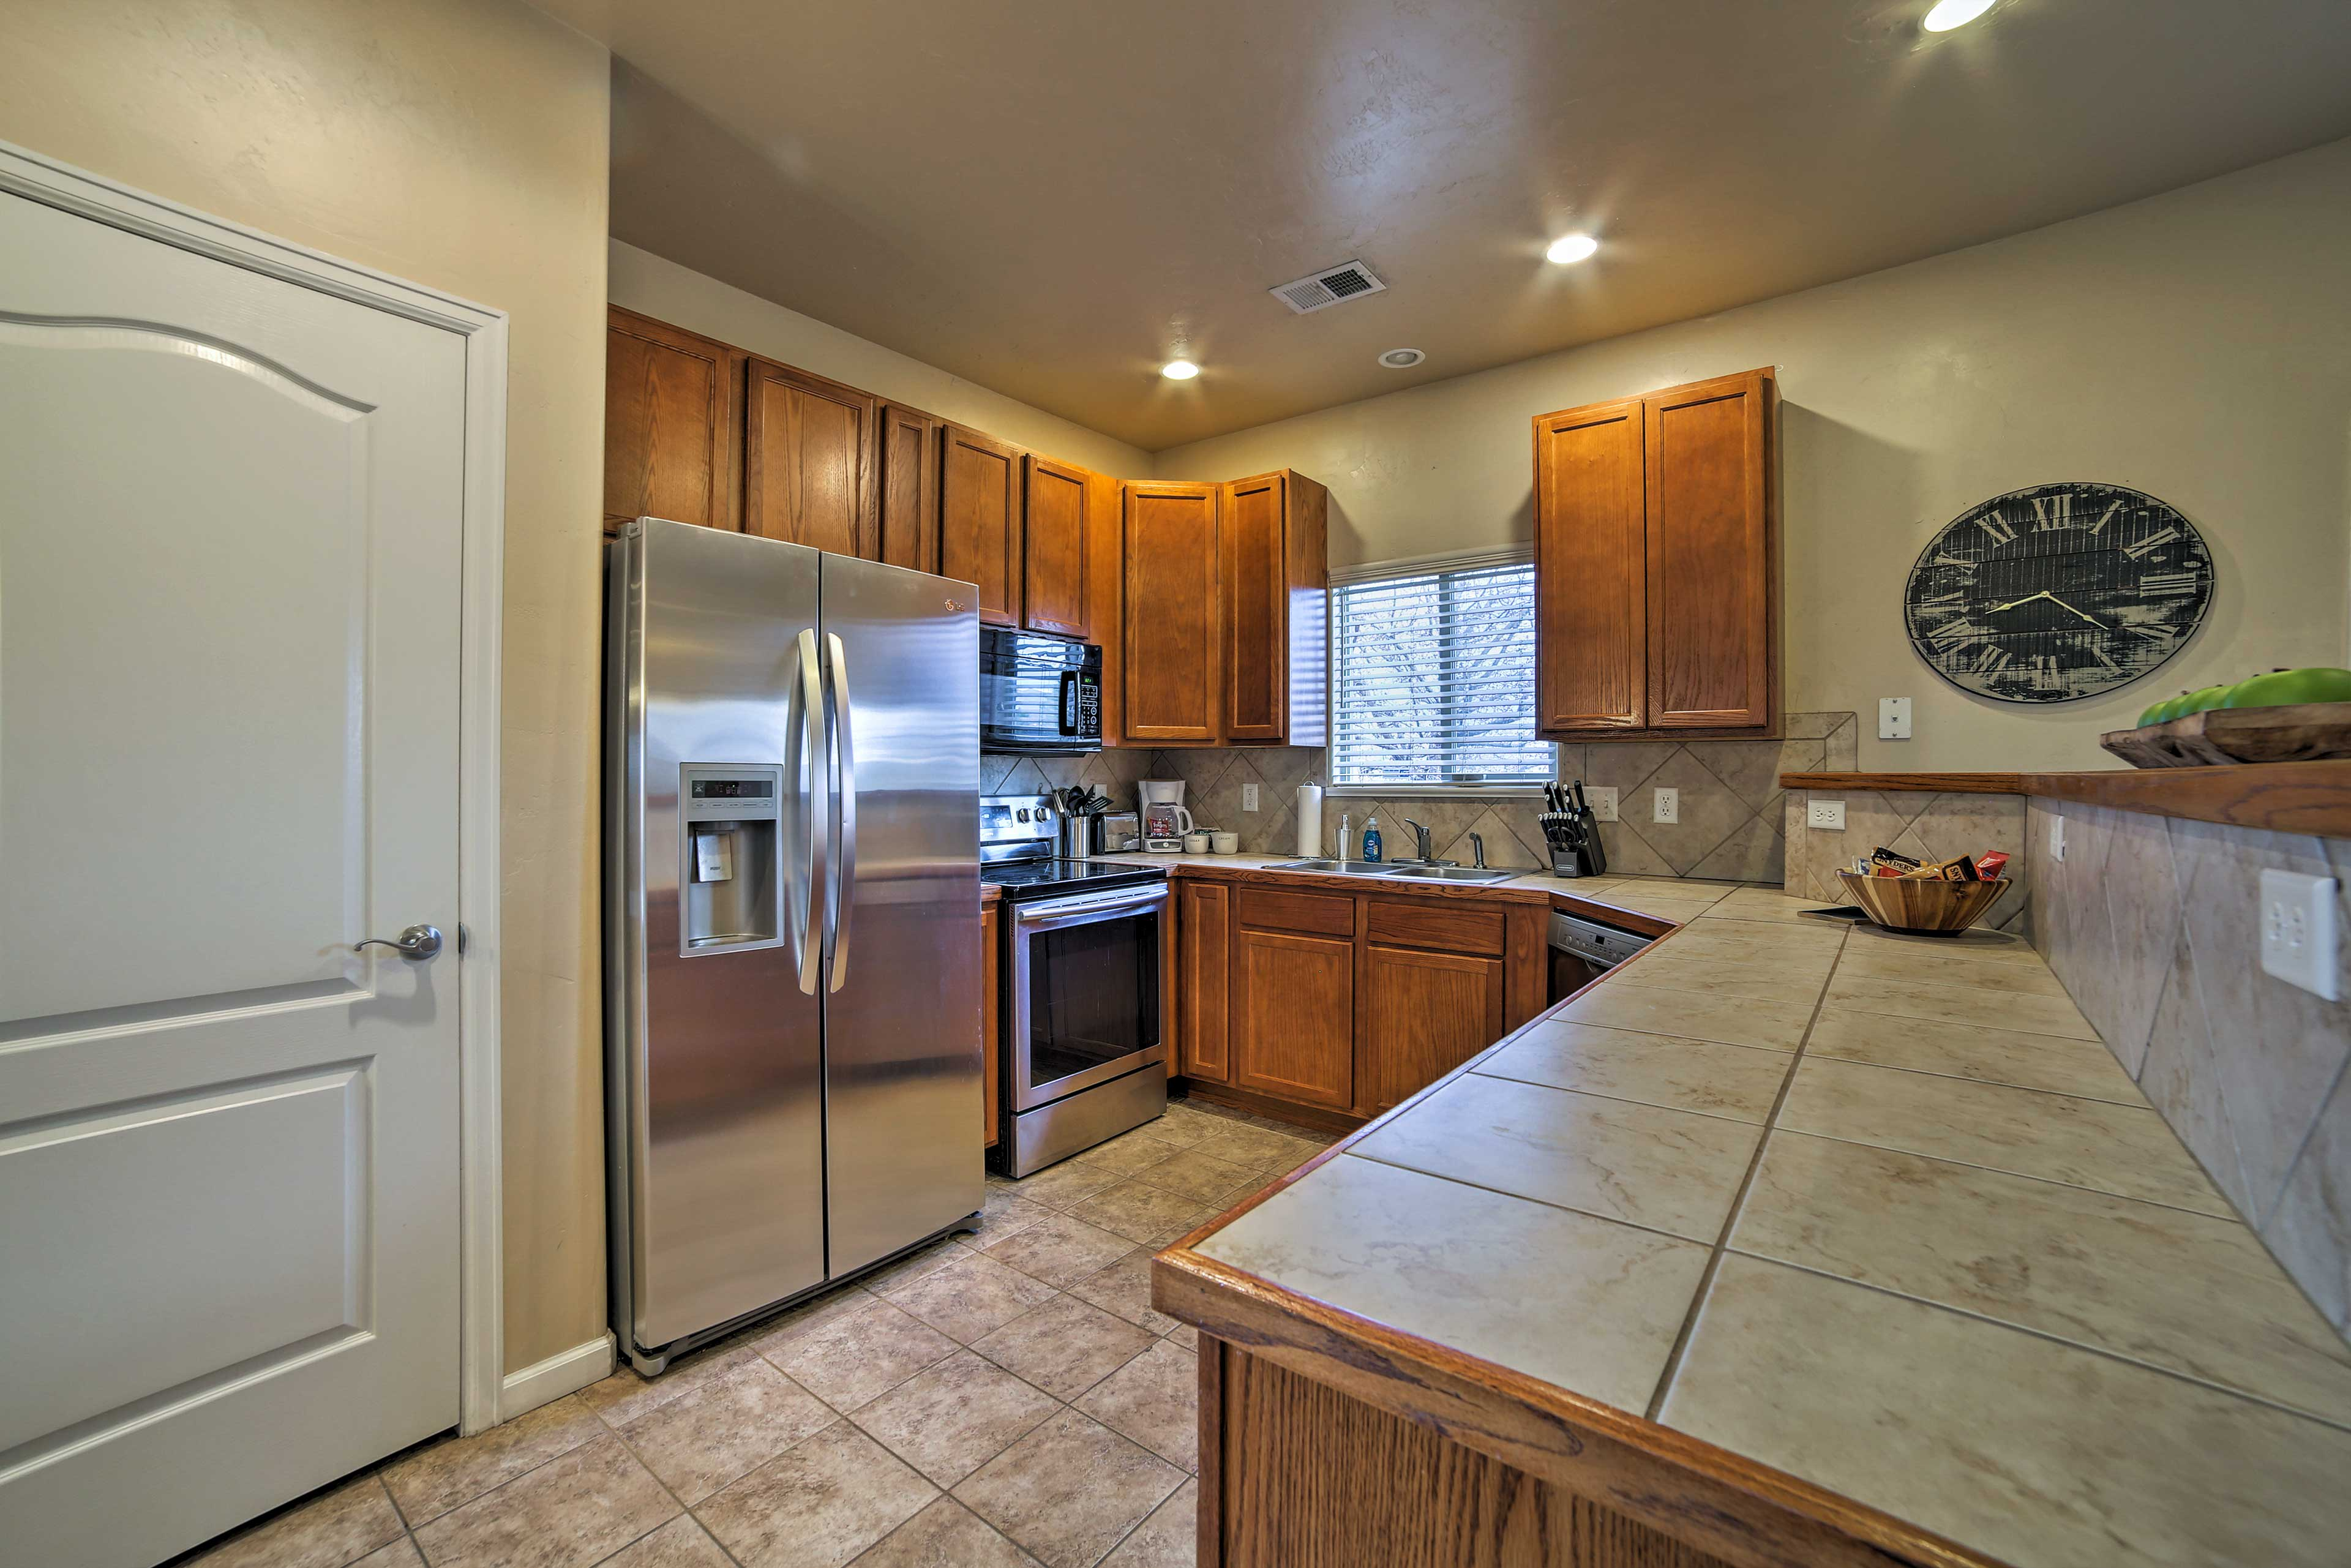 Stainless steel appliances complete the fully equipped kitchen.